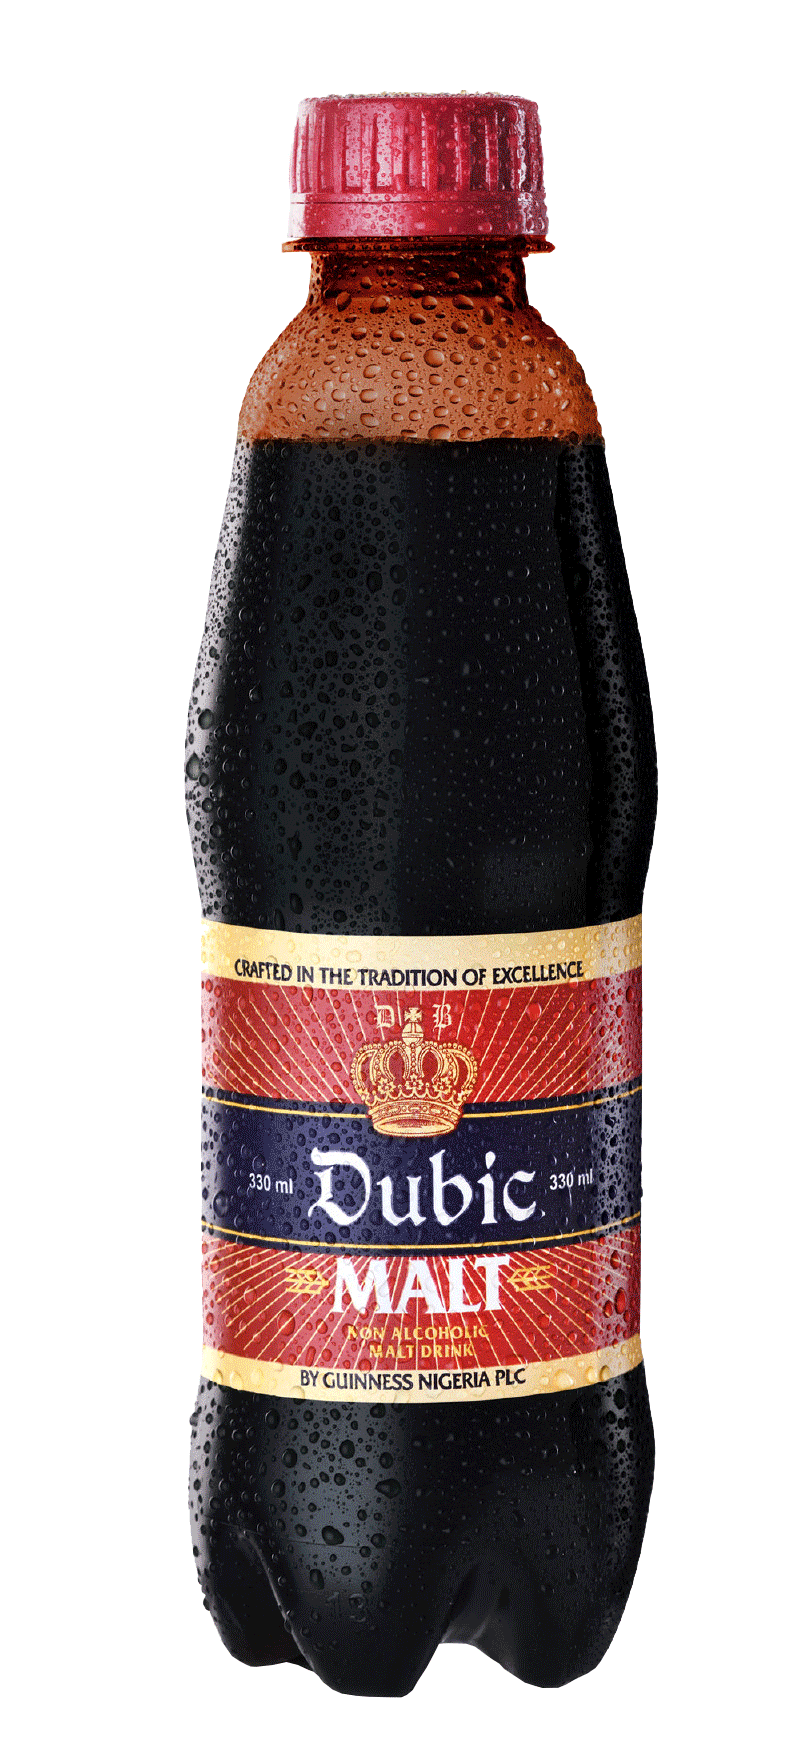 dubic_pet_bottle.png